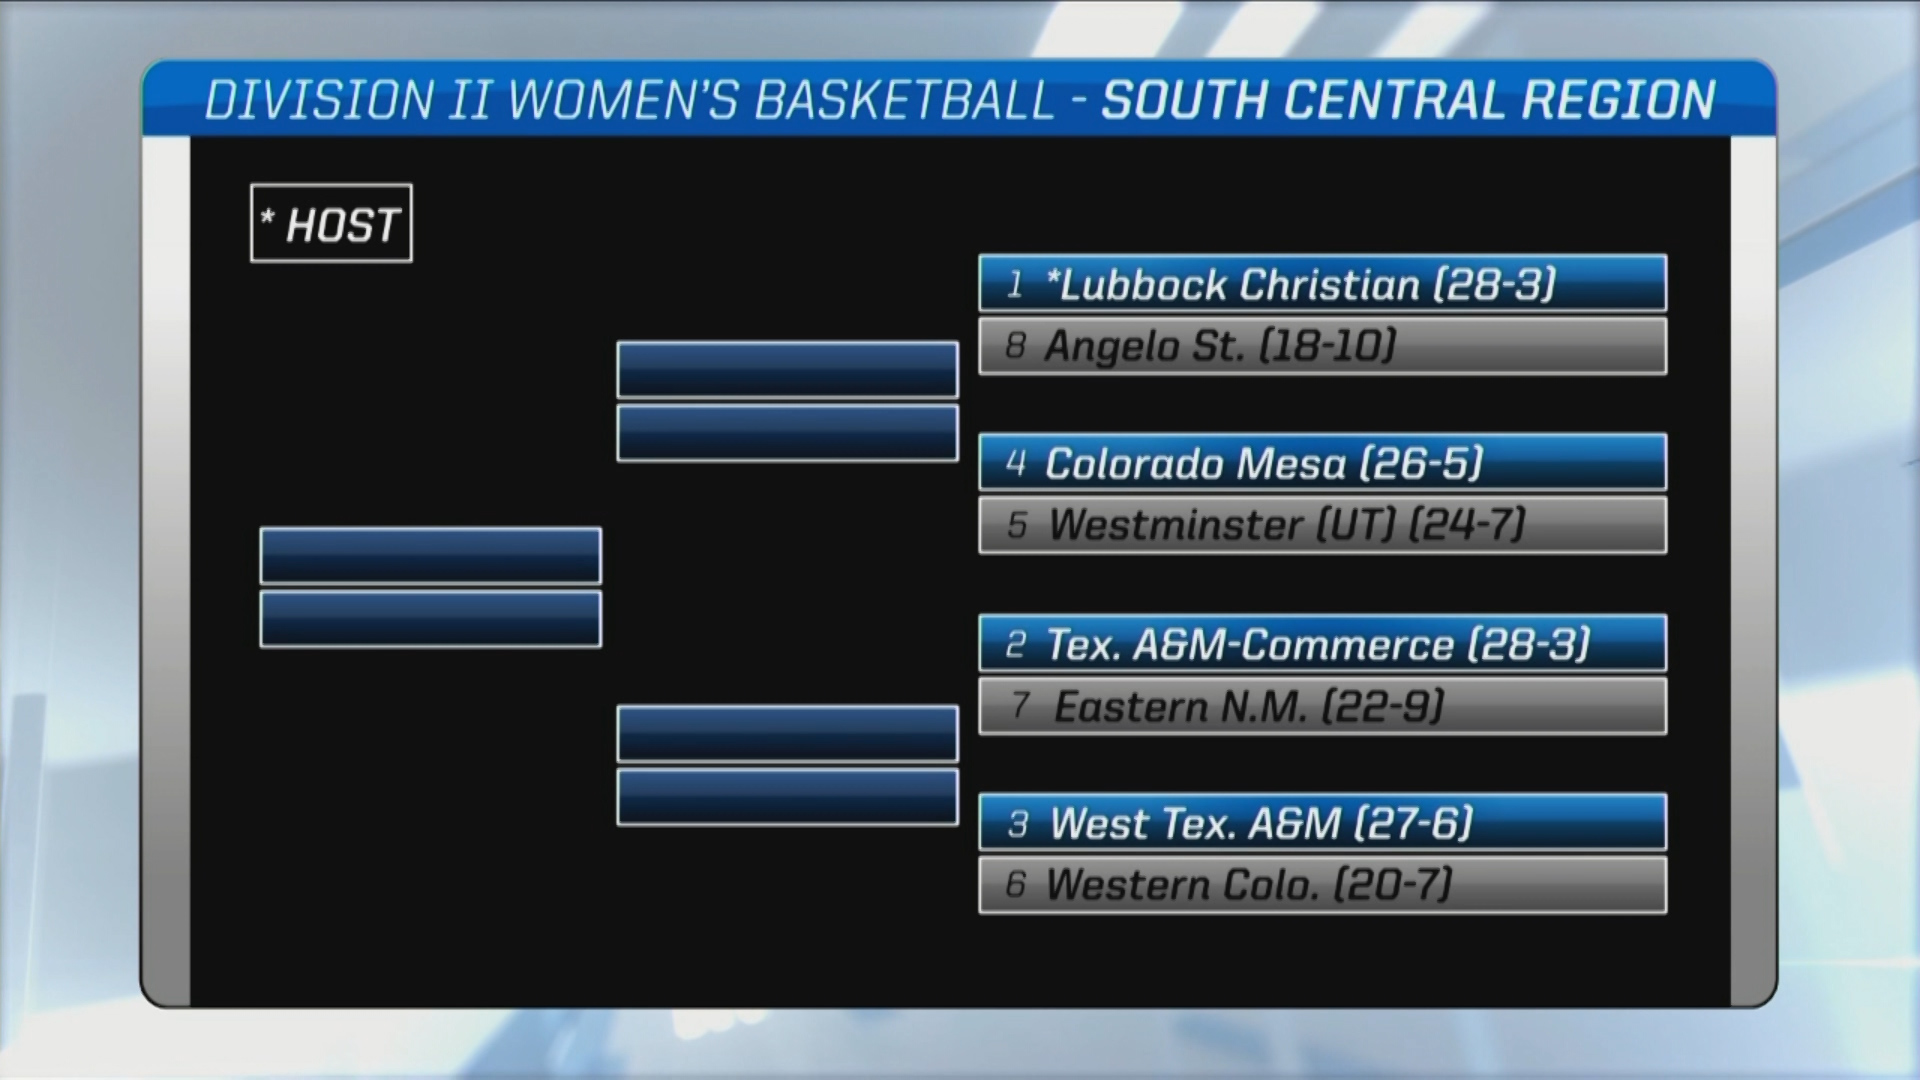 Lady Chaps To Host South Central Region Games In D2 NCAA